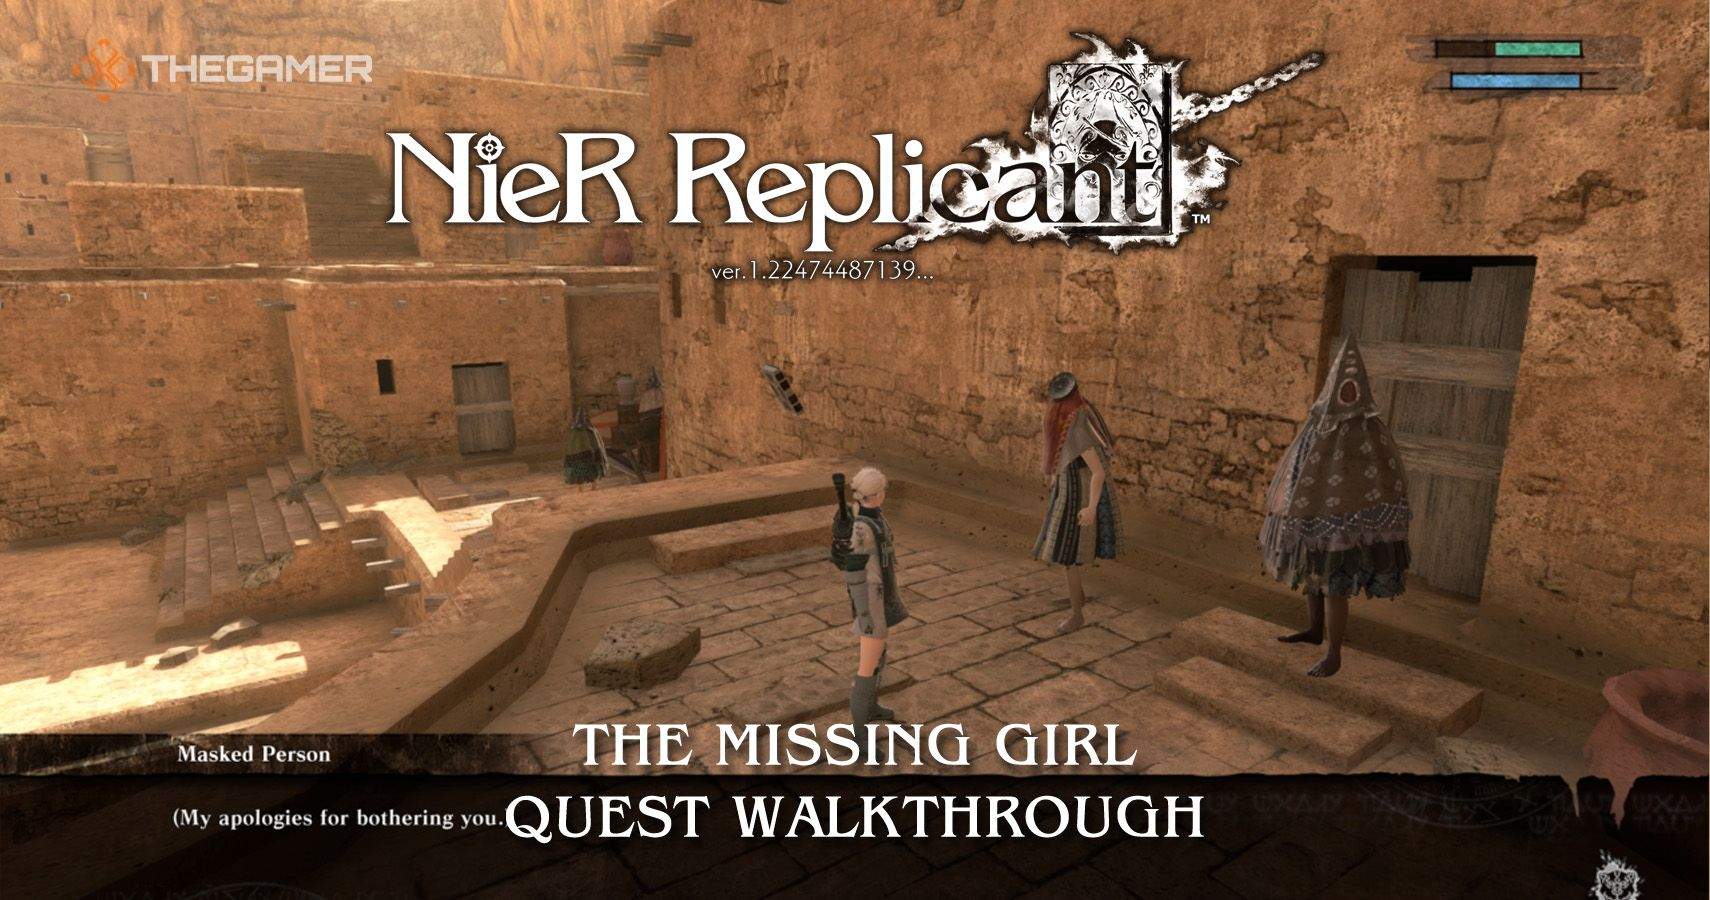 Nier Replicant: The Missing Girl Quest Tutorial